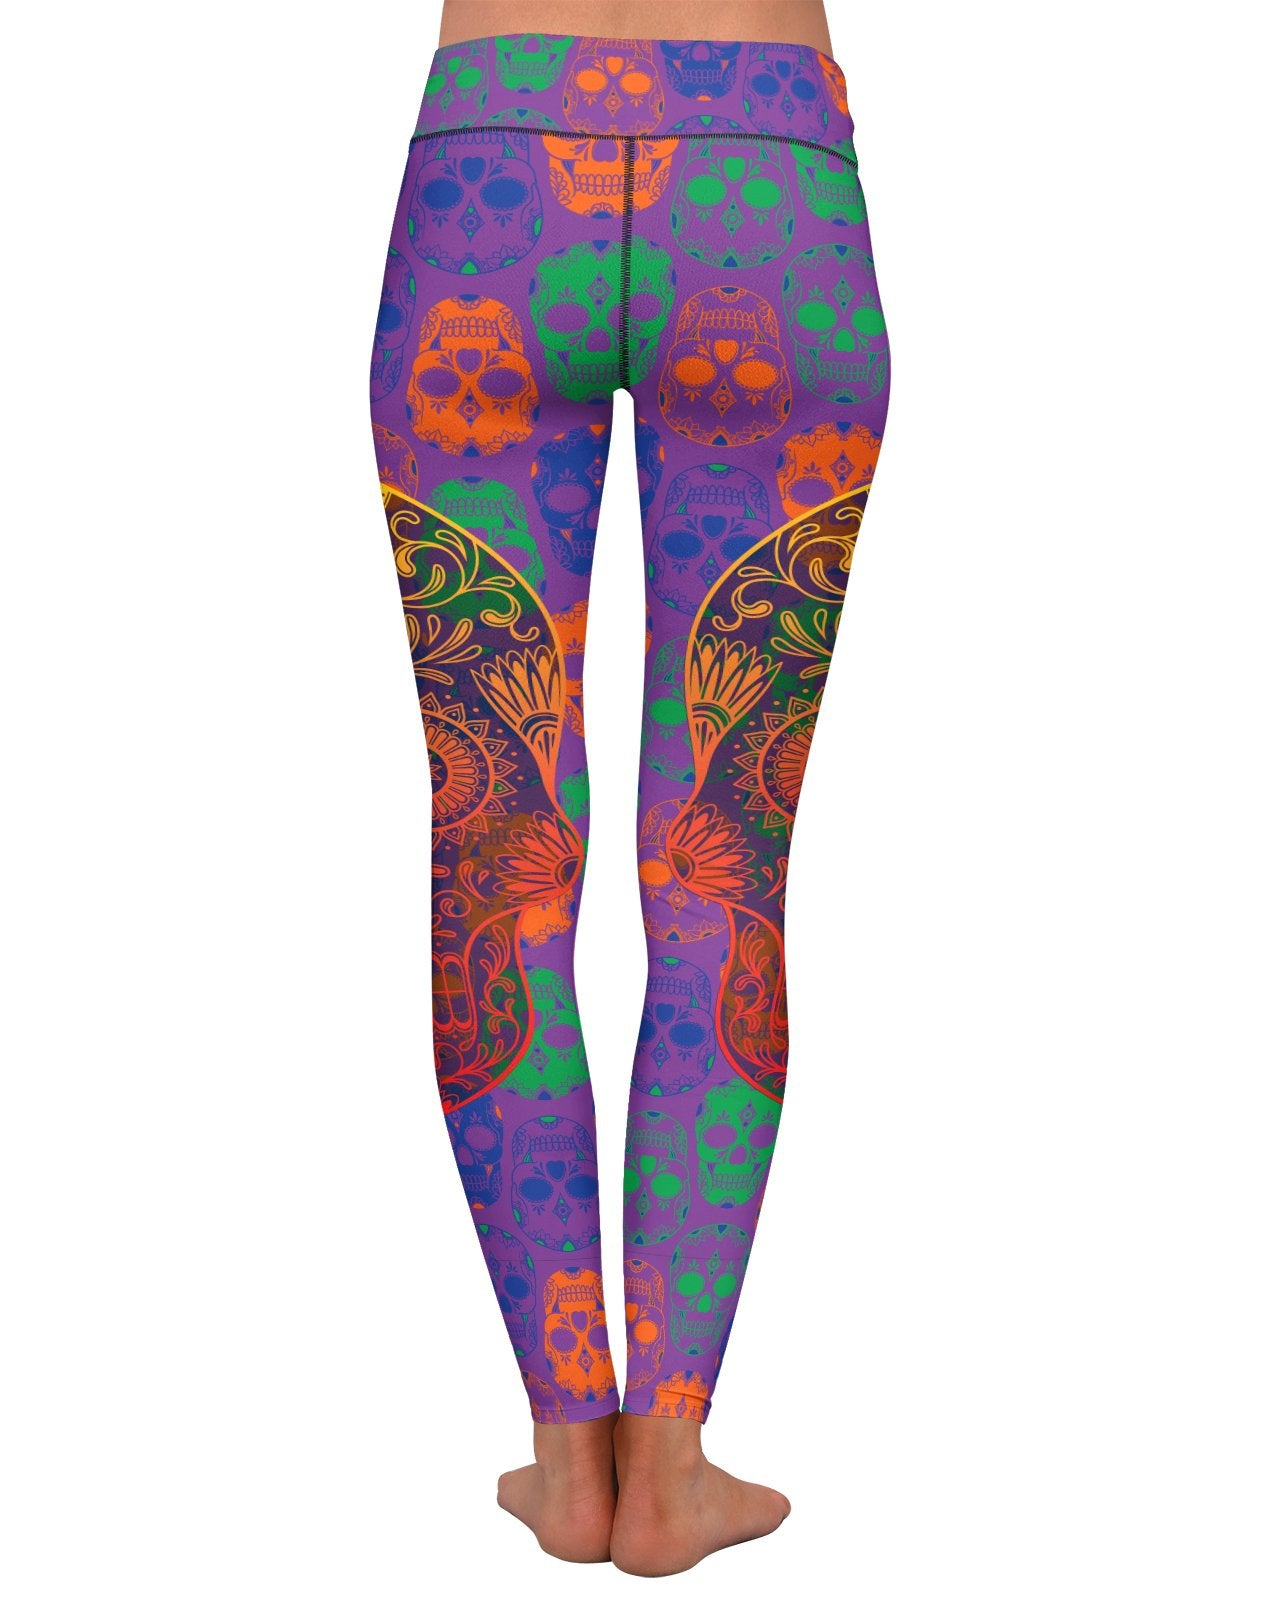 Bright Sugar Skull Yoga Leggings